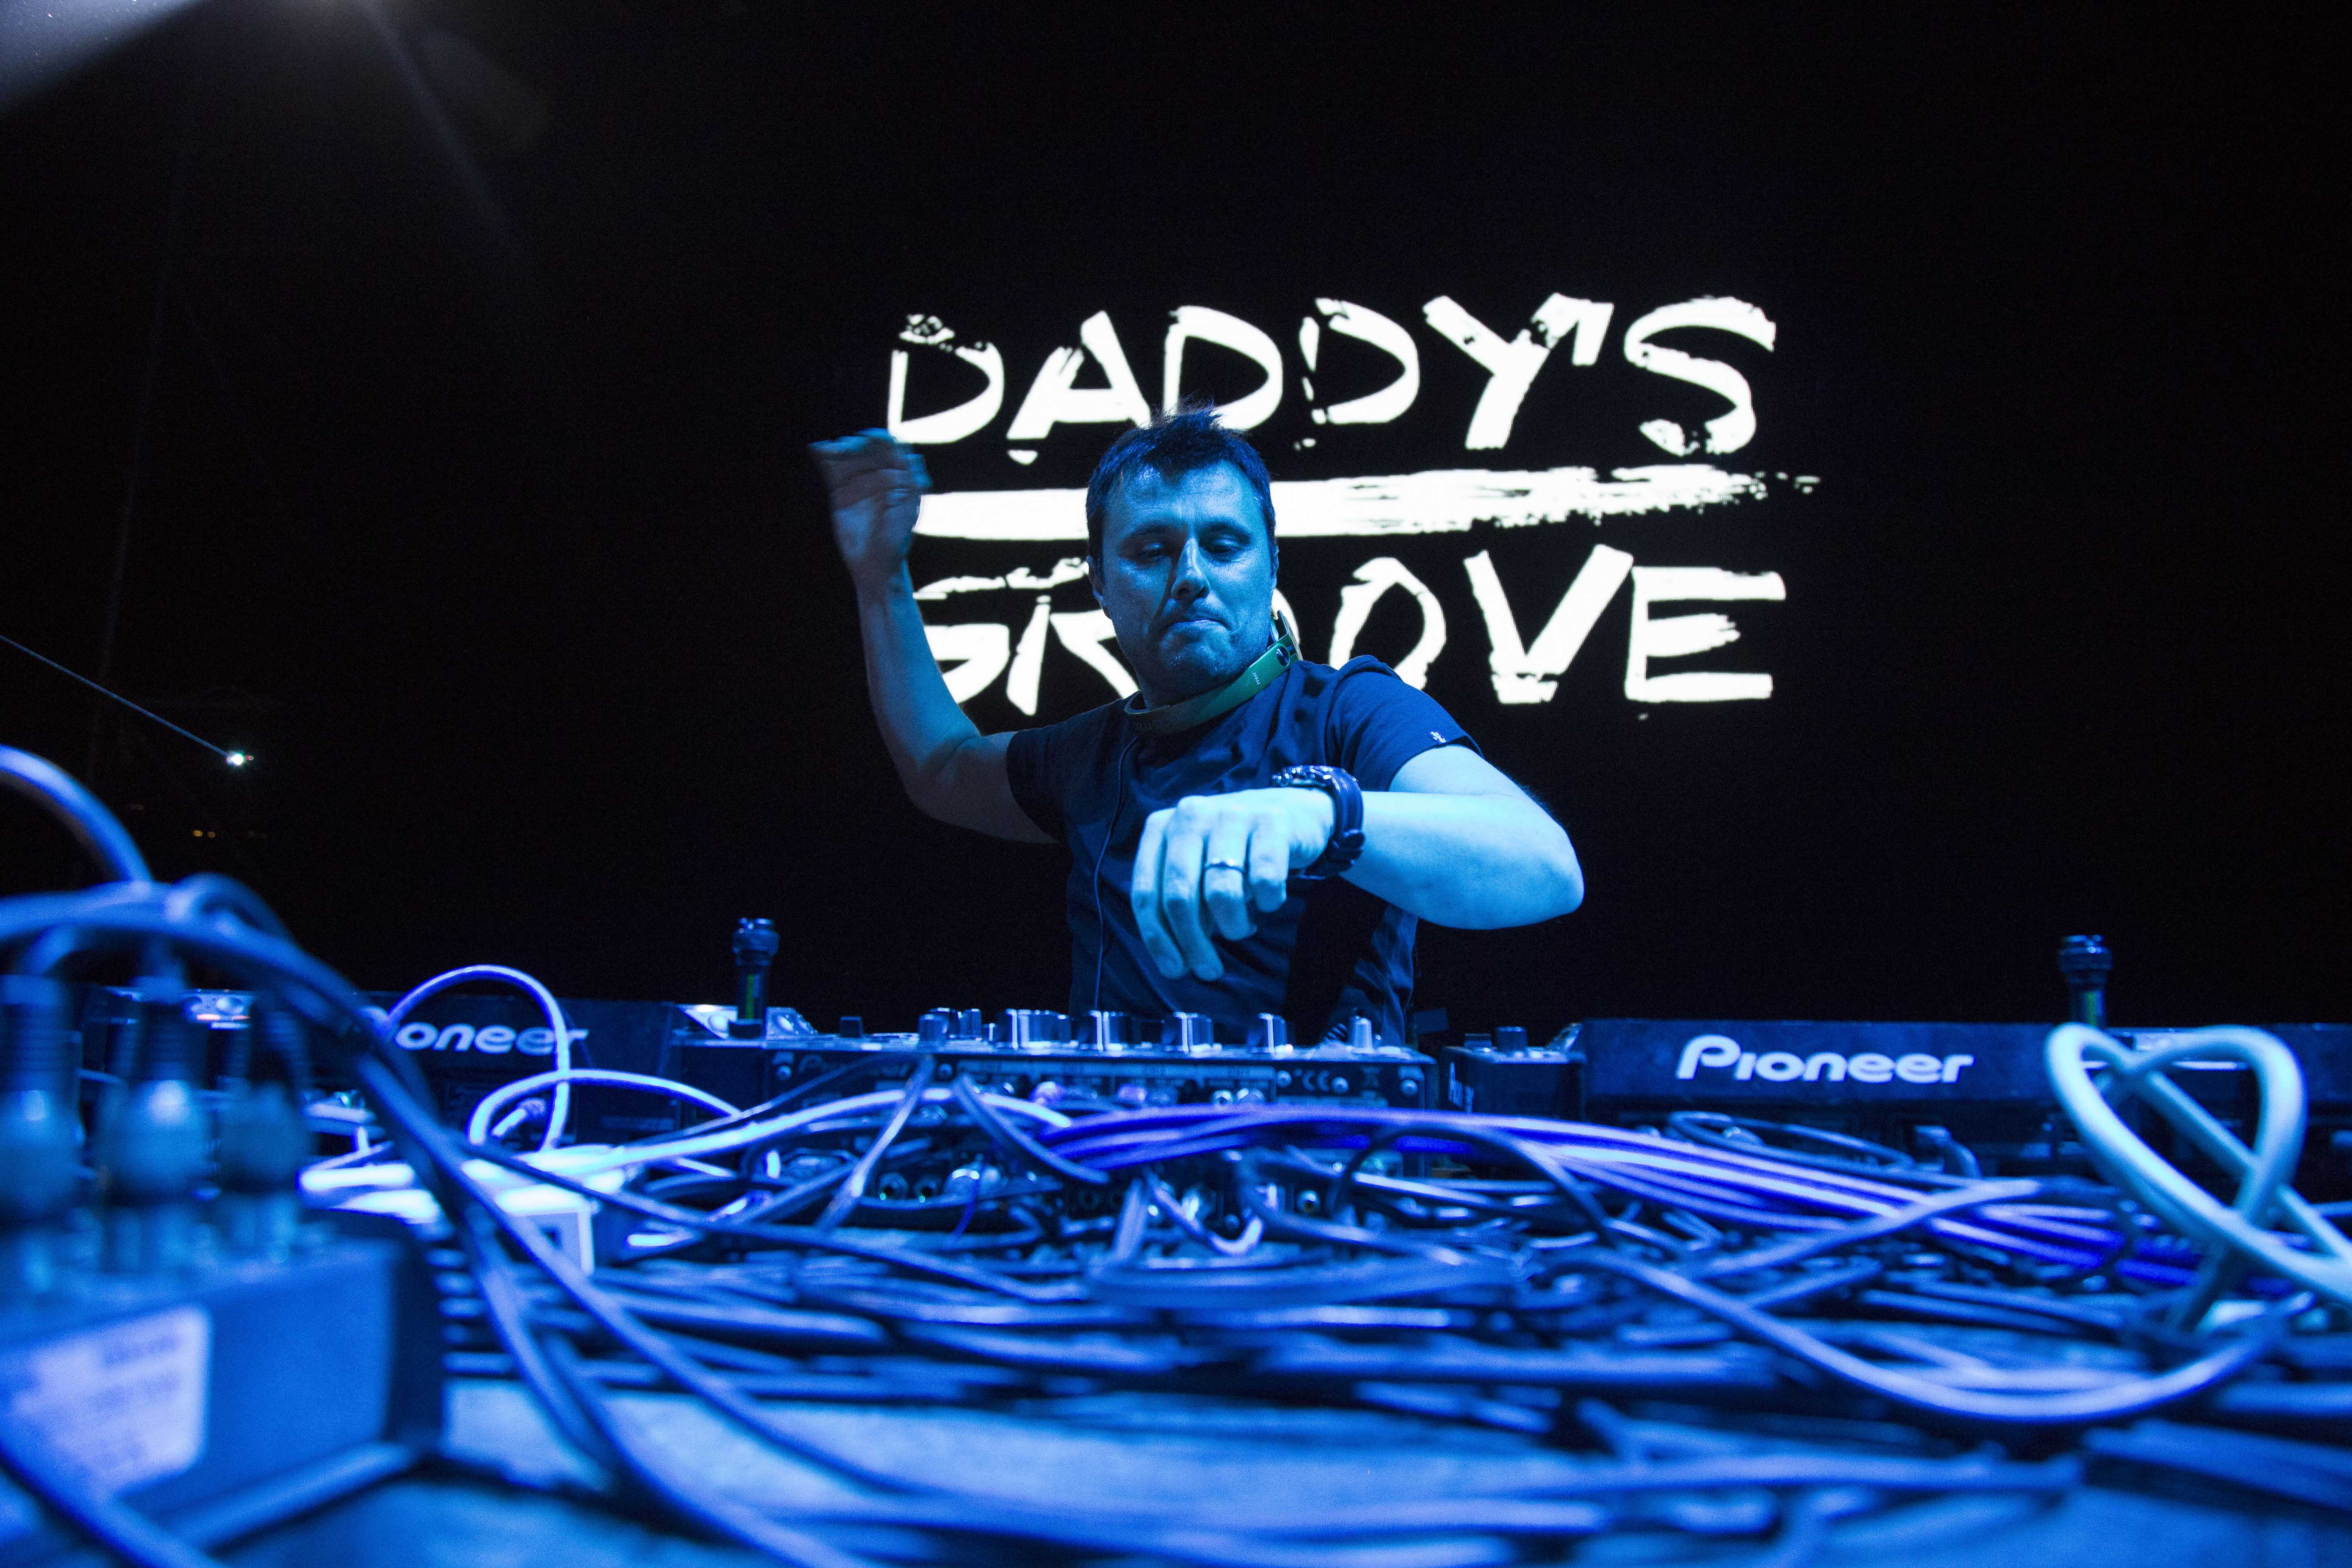 4-daddys-groove